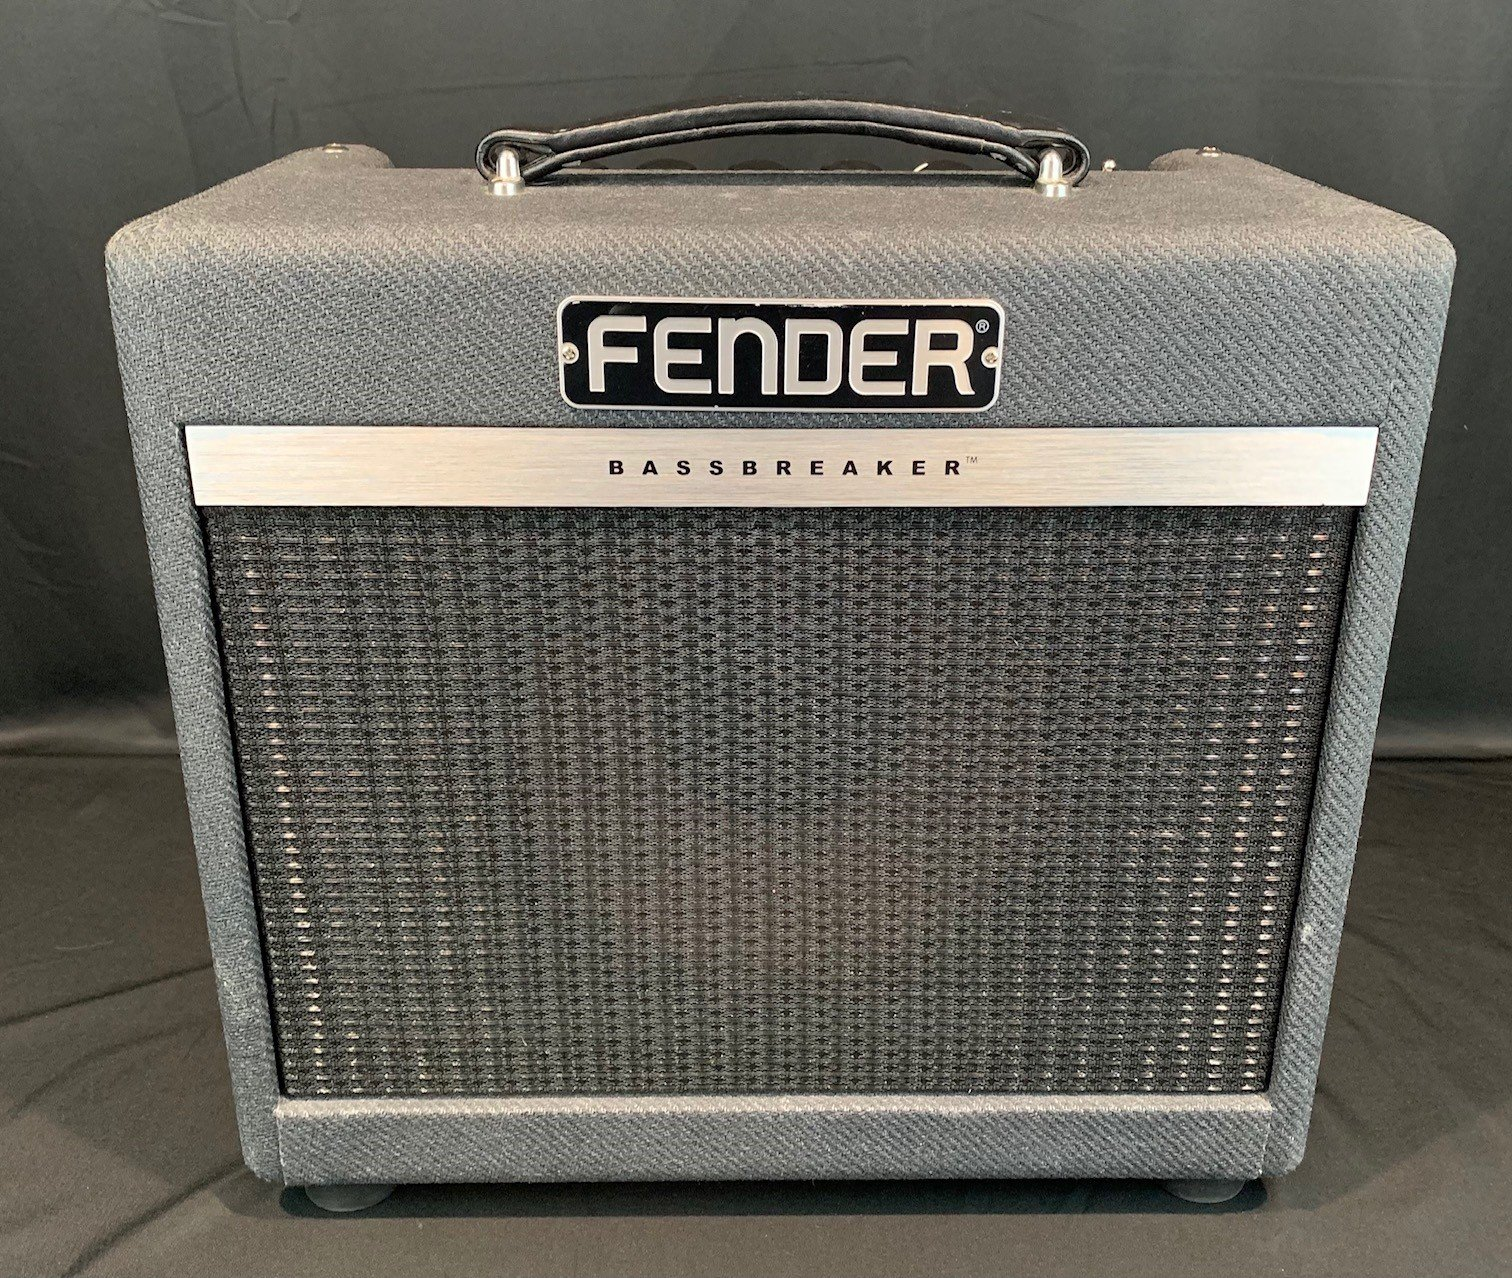 Used Fender Bassbreaker 007 Guitar Amplifier